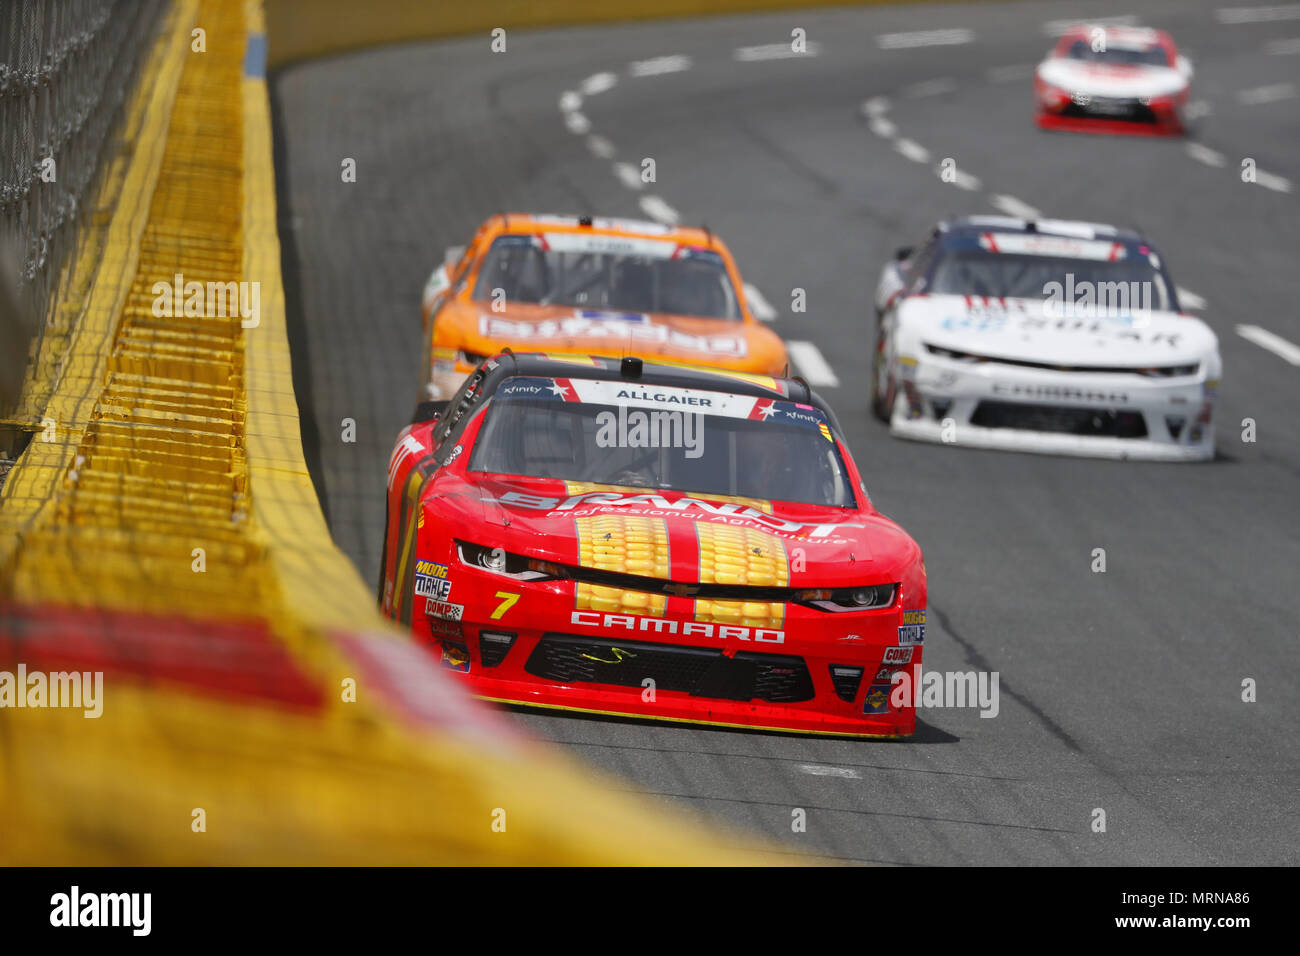 Concord, North Carolina, USA. 26th May, 2018. Justin Allgaier (7) brings his car through the turns during the Alsco 300 at Charlotte Motor Speedway in Concord, North Carolina. Credit: Chris Owens Asp Inc/ASP/ZUMA Wire/Alamy Live News - Stock Image